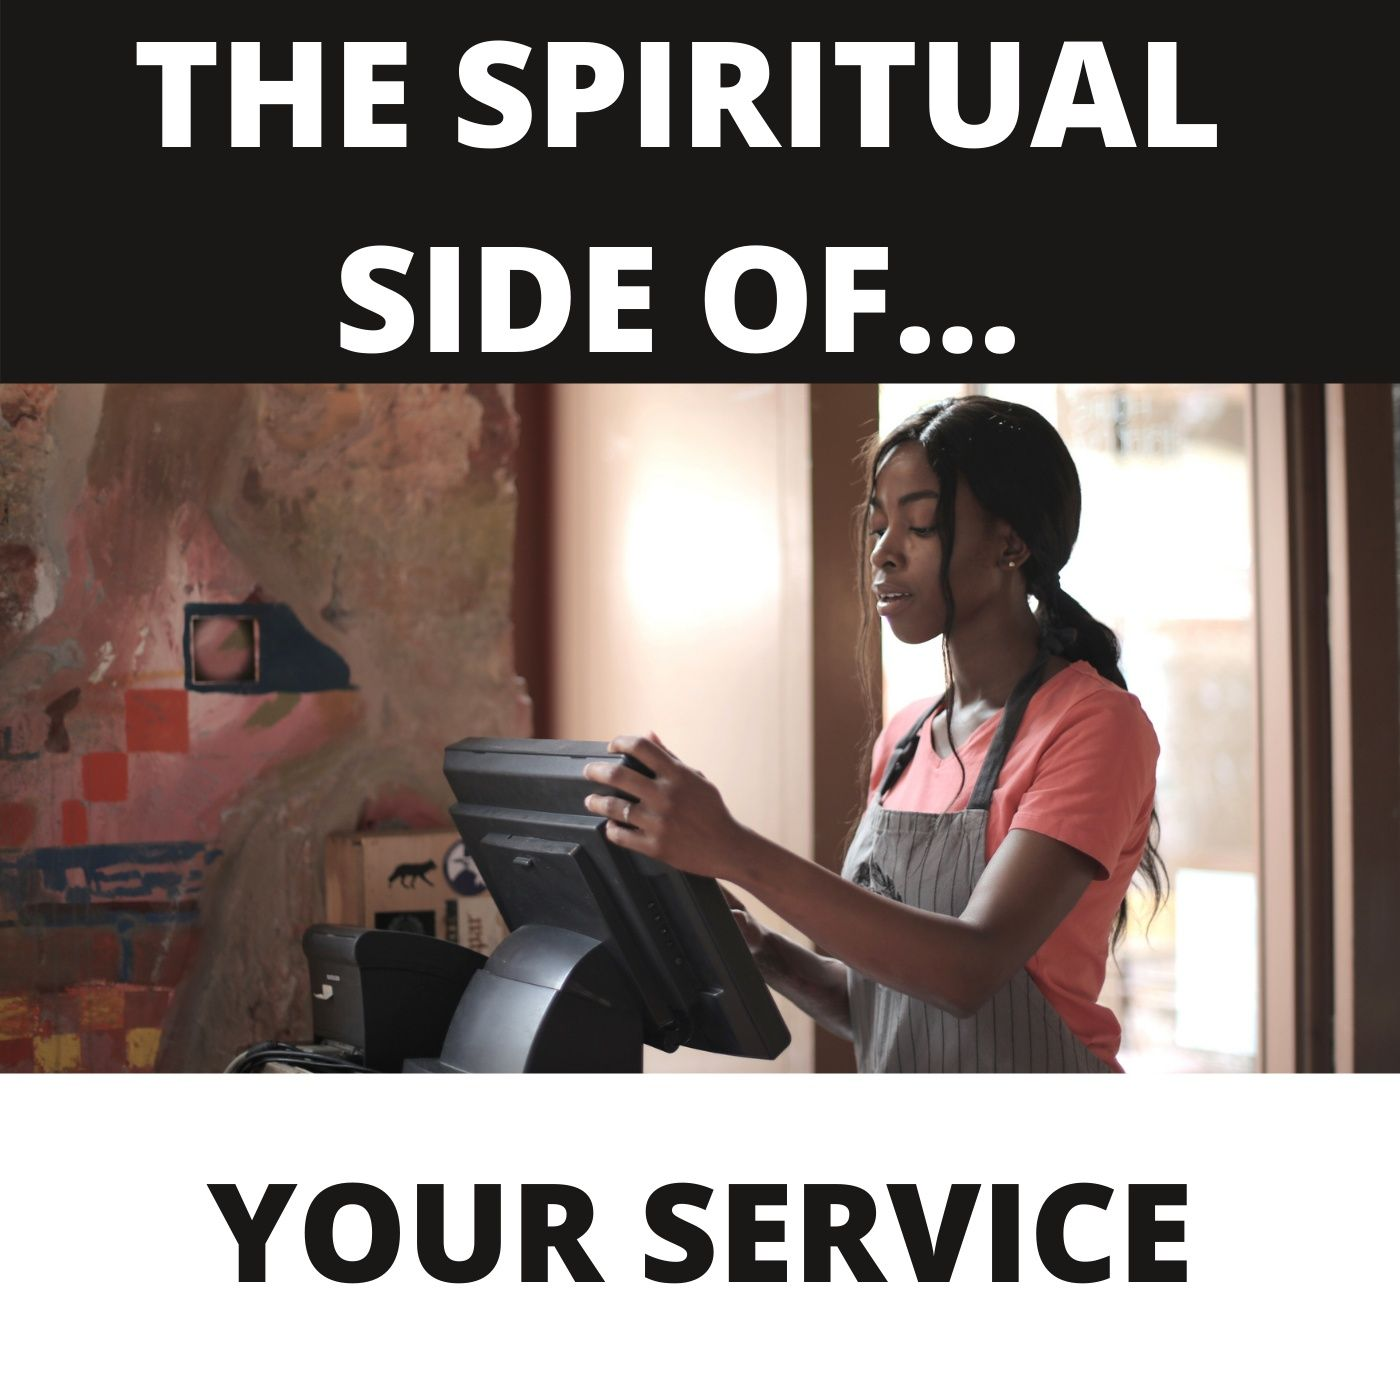 THE SPIRITUAL SIDE OF RENDERING YOUR SERVICE